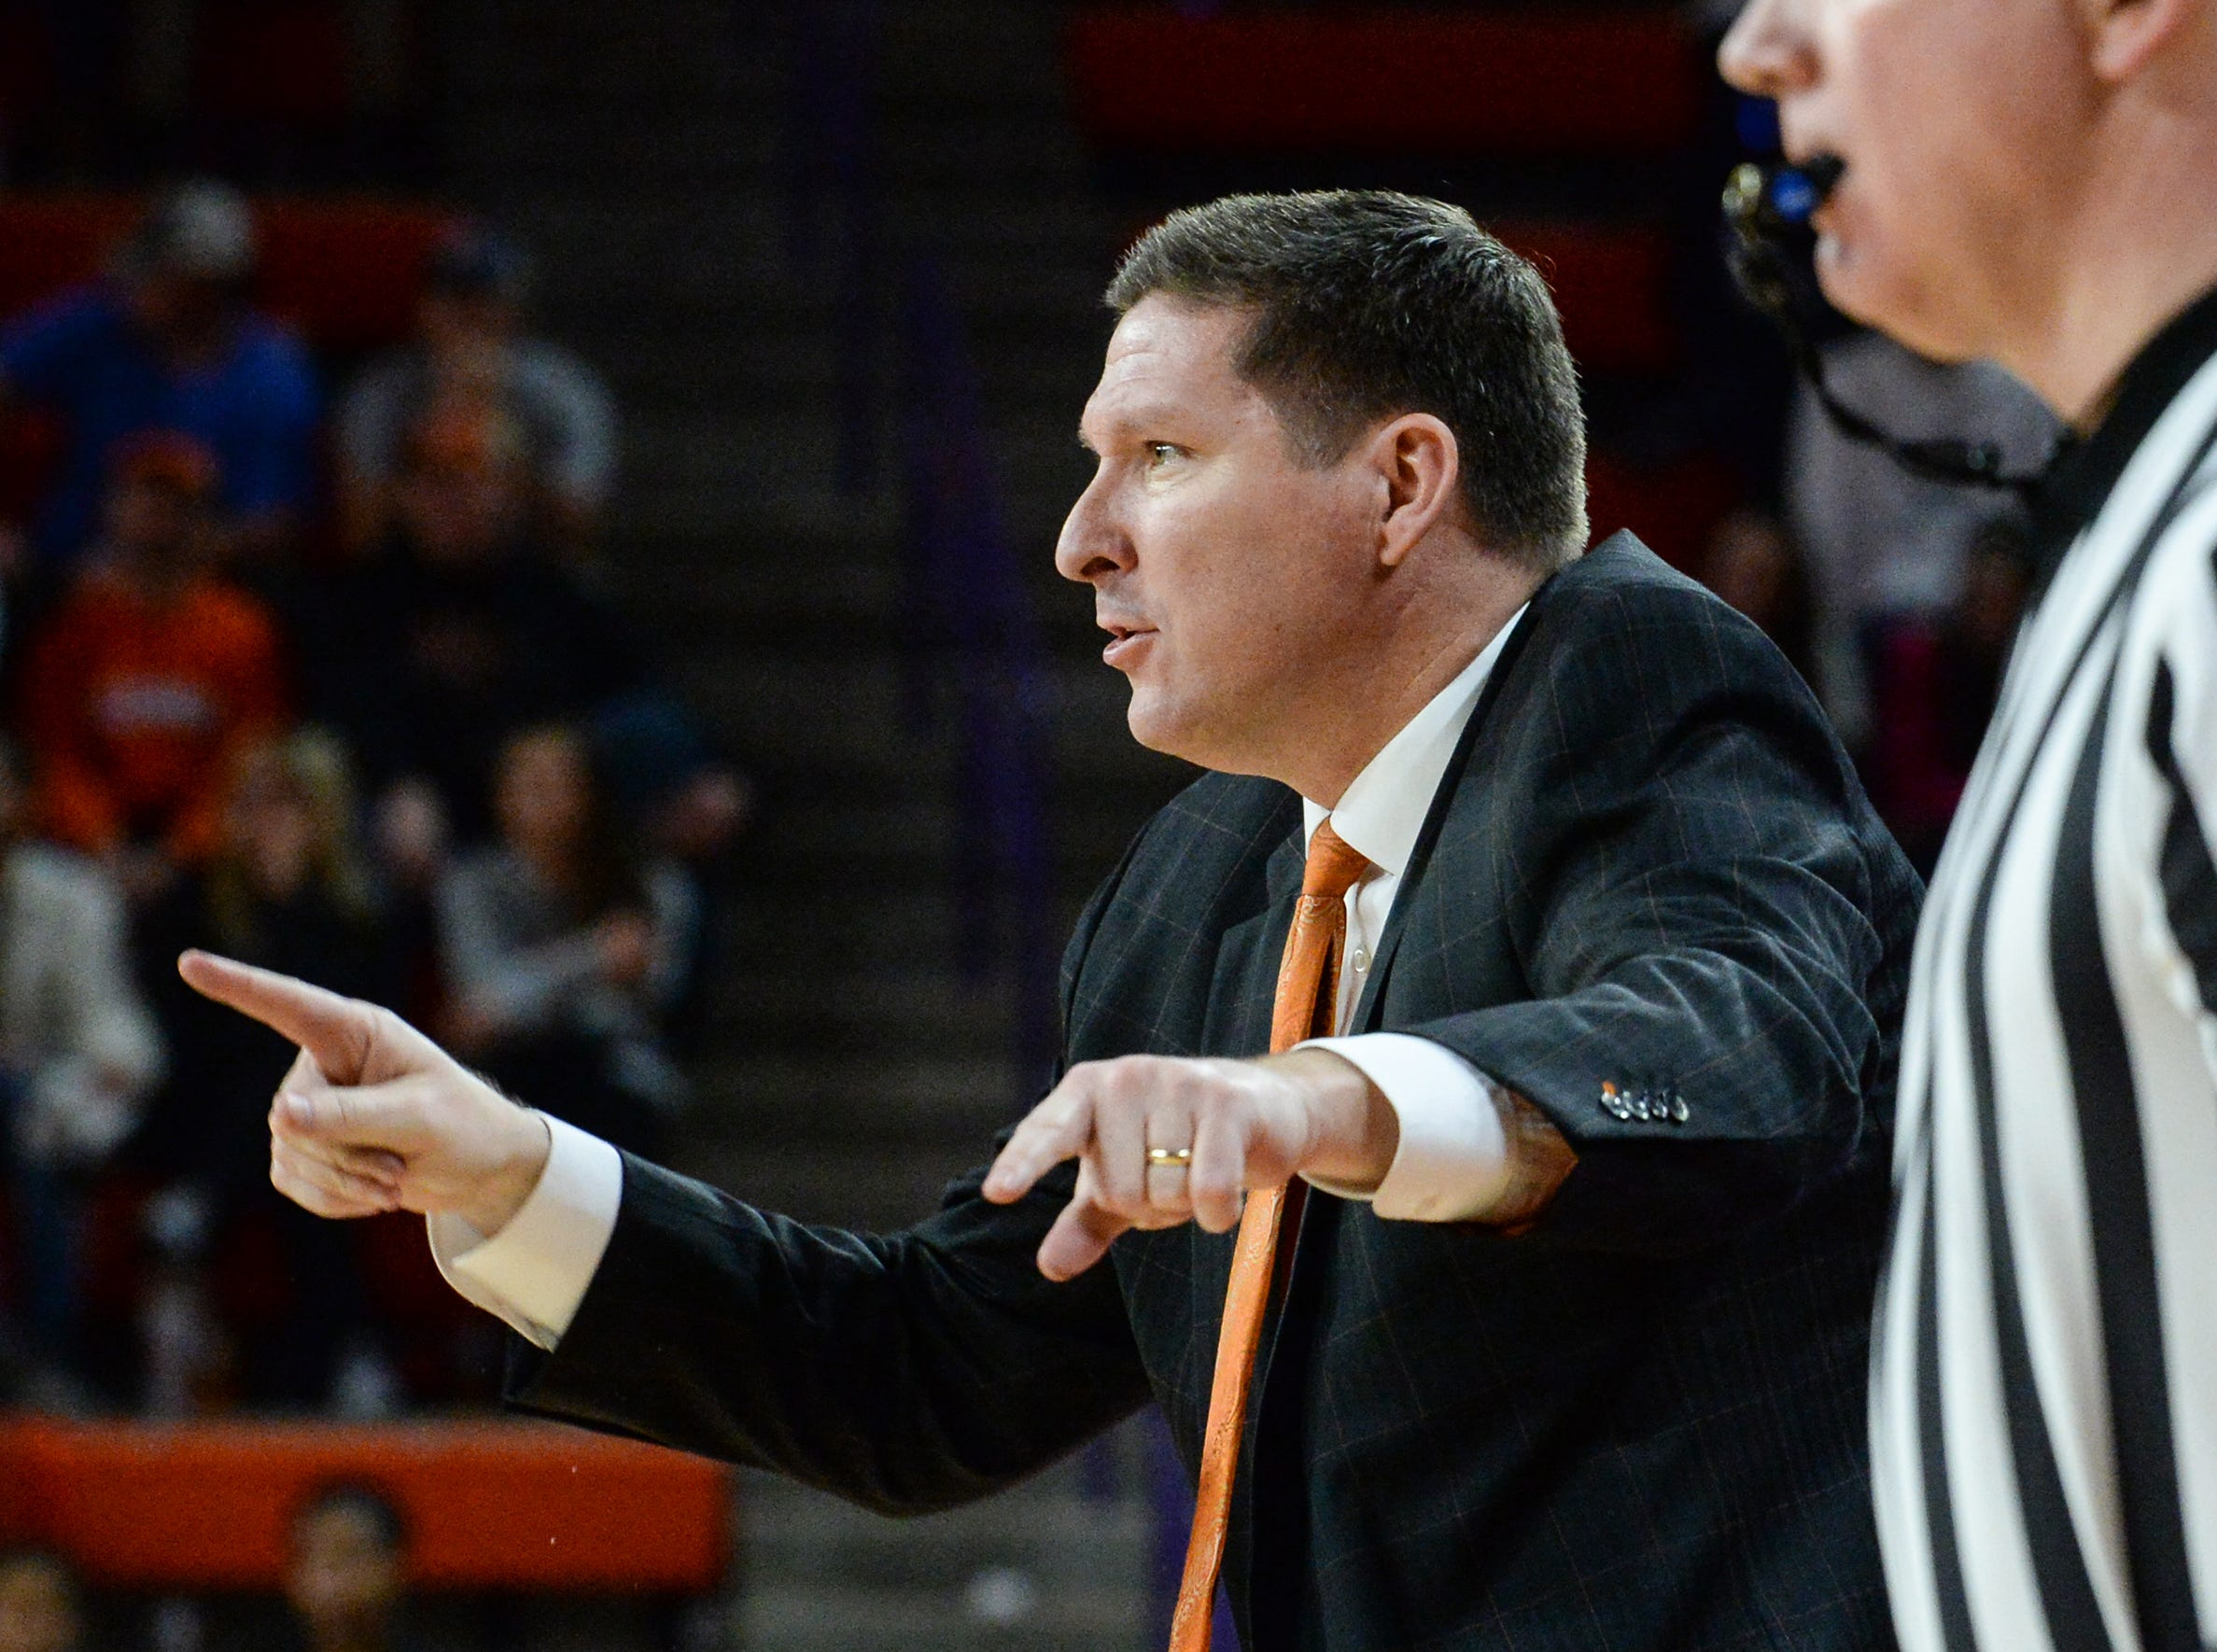 Clemson head coach Brad Brownell gives direction to his team playing Florida State during the second half at Littlejohn Coliseum in Clemson Tuesday, February 19, 2019.